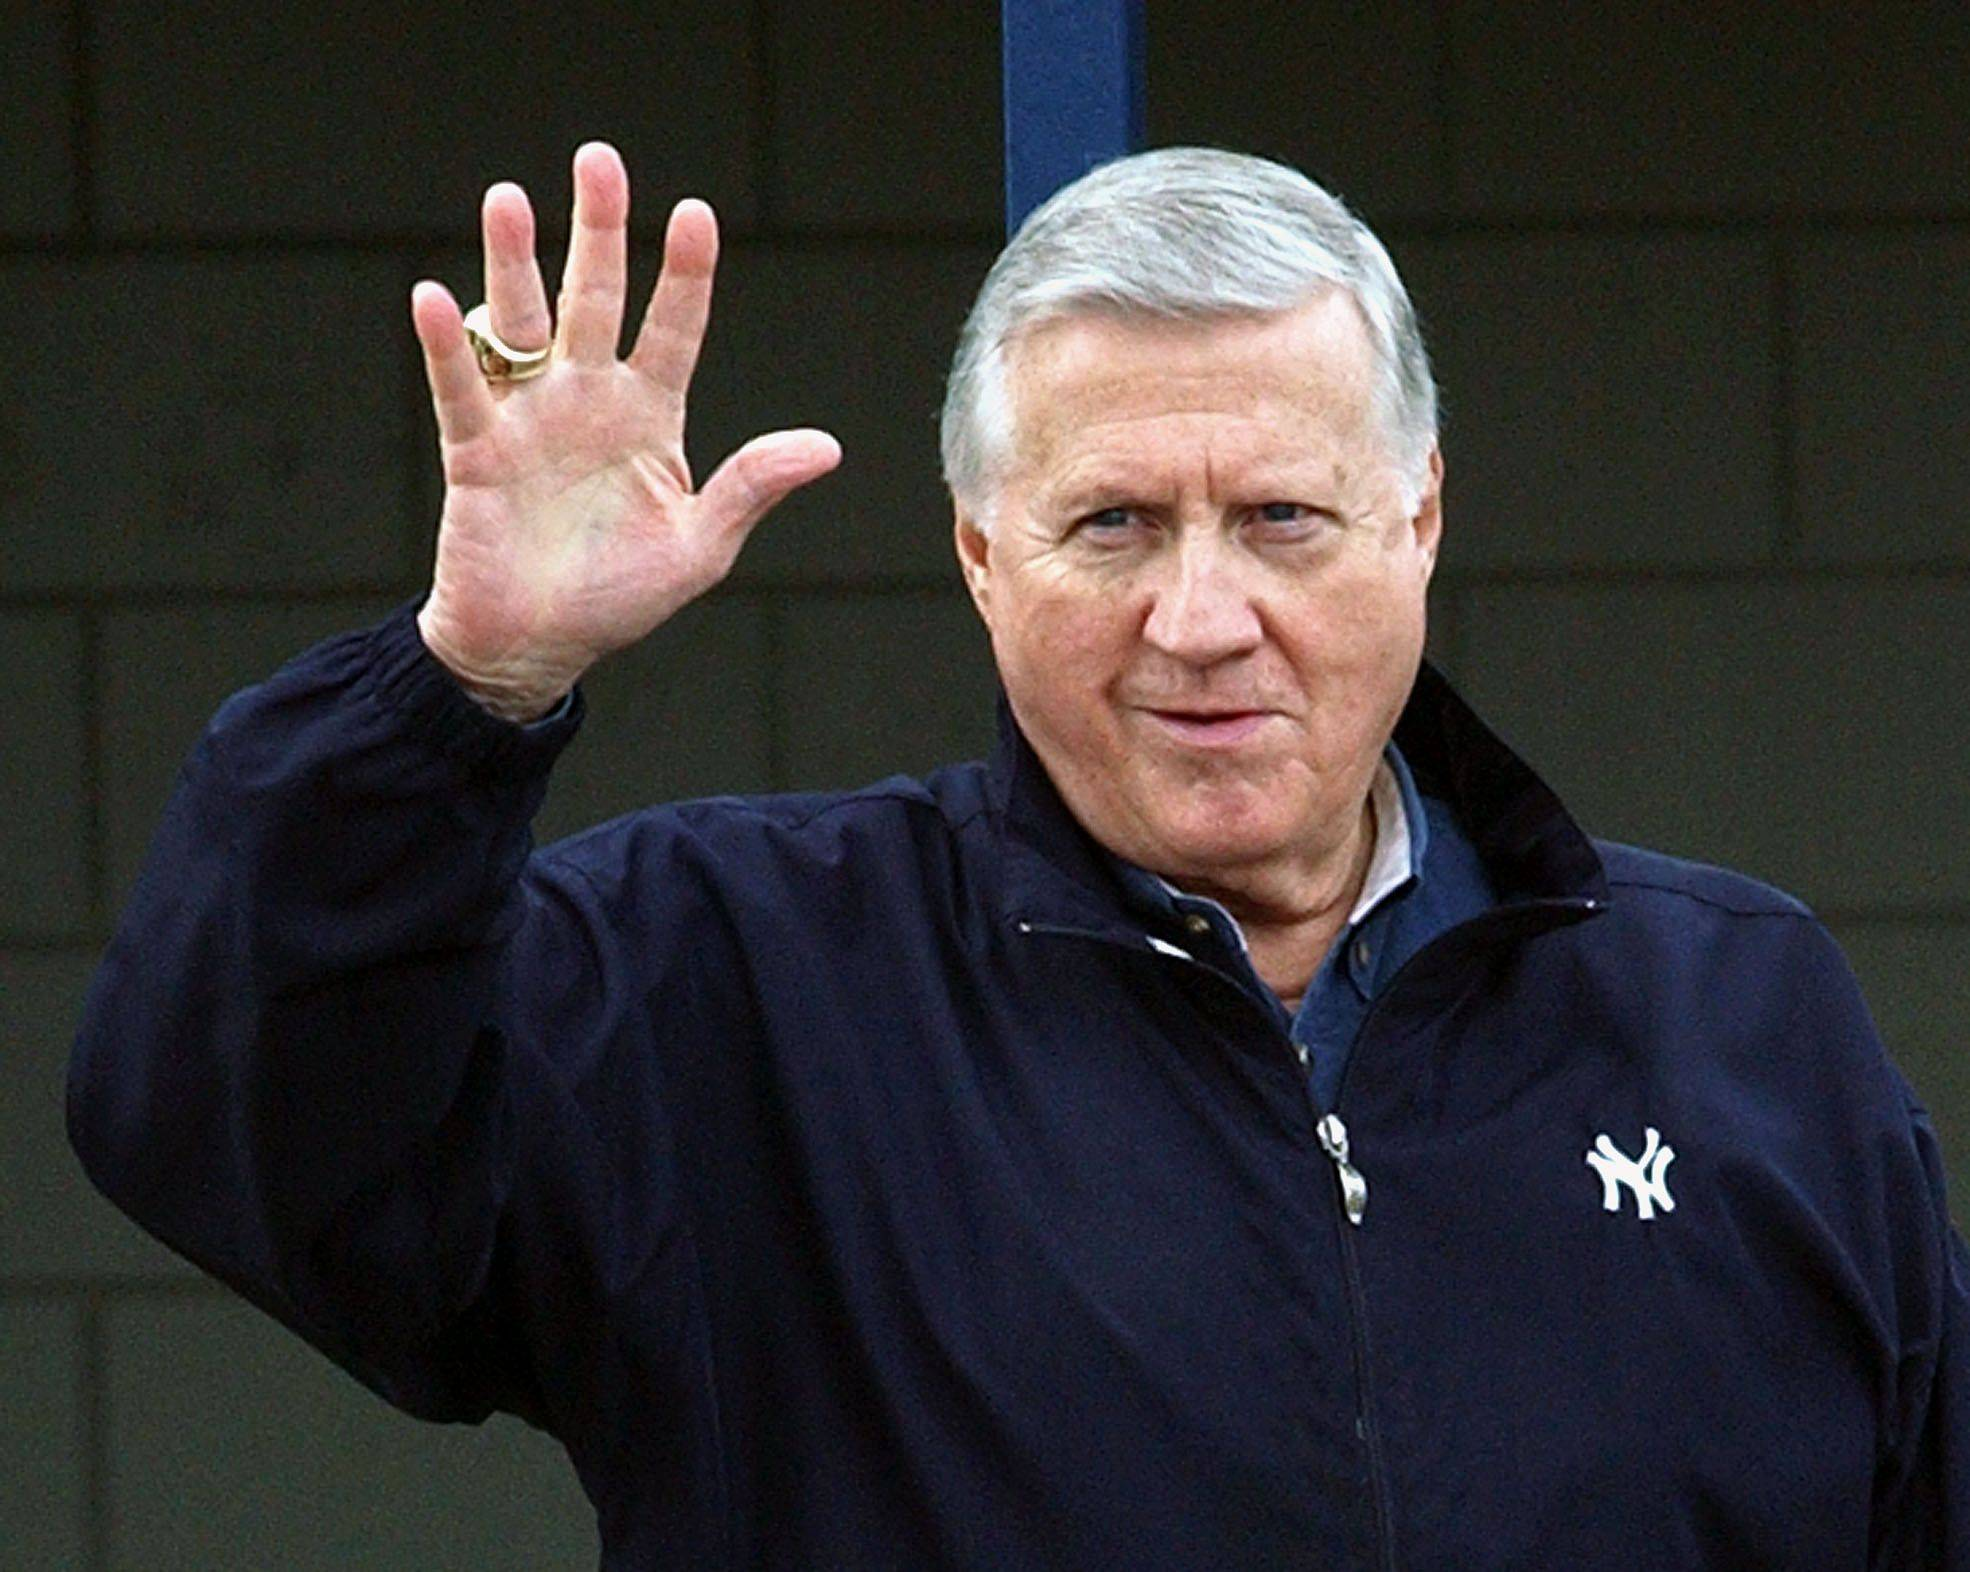 New York Yankees owner George Steinbrenner died July 13, 2010, just after celebrating his 80th birthday.